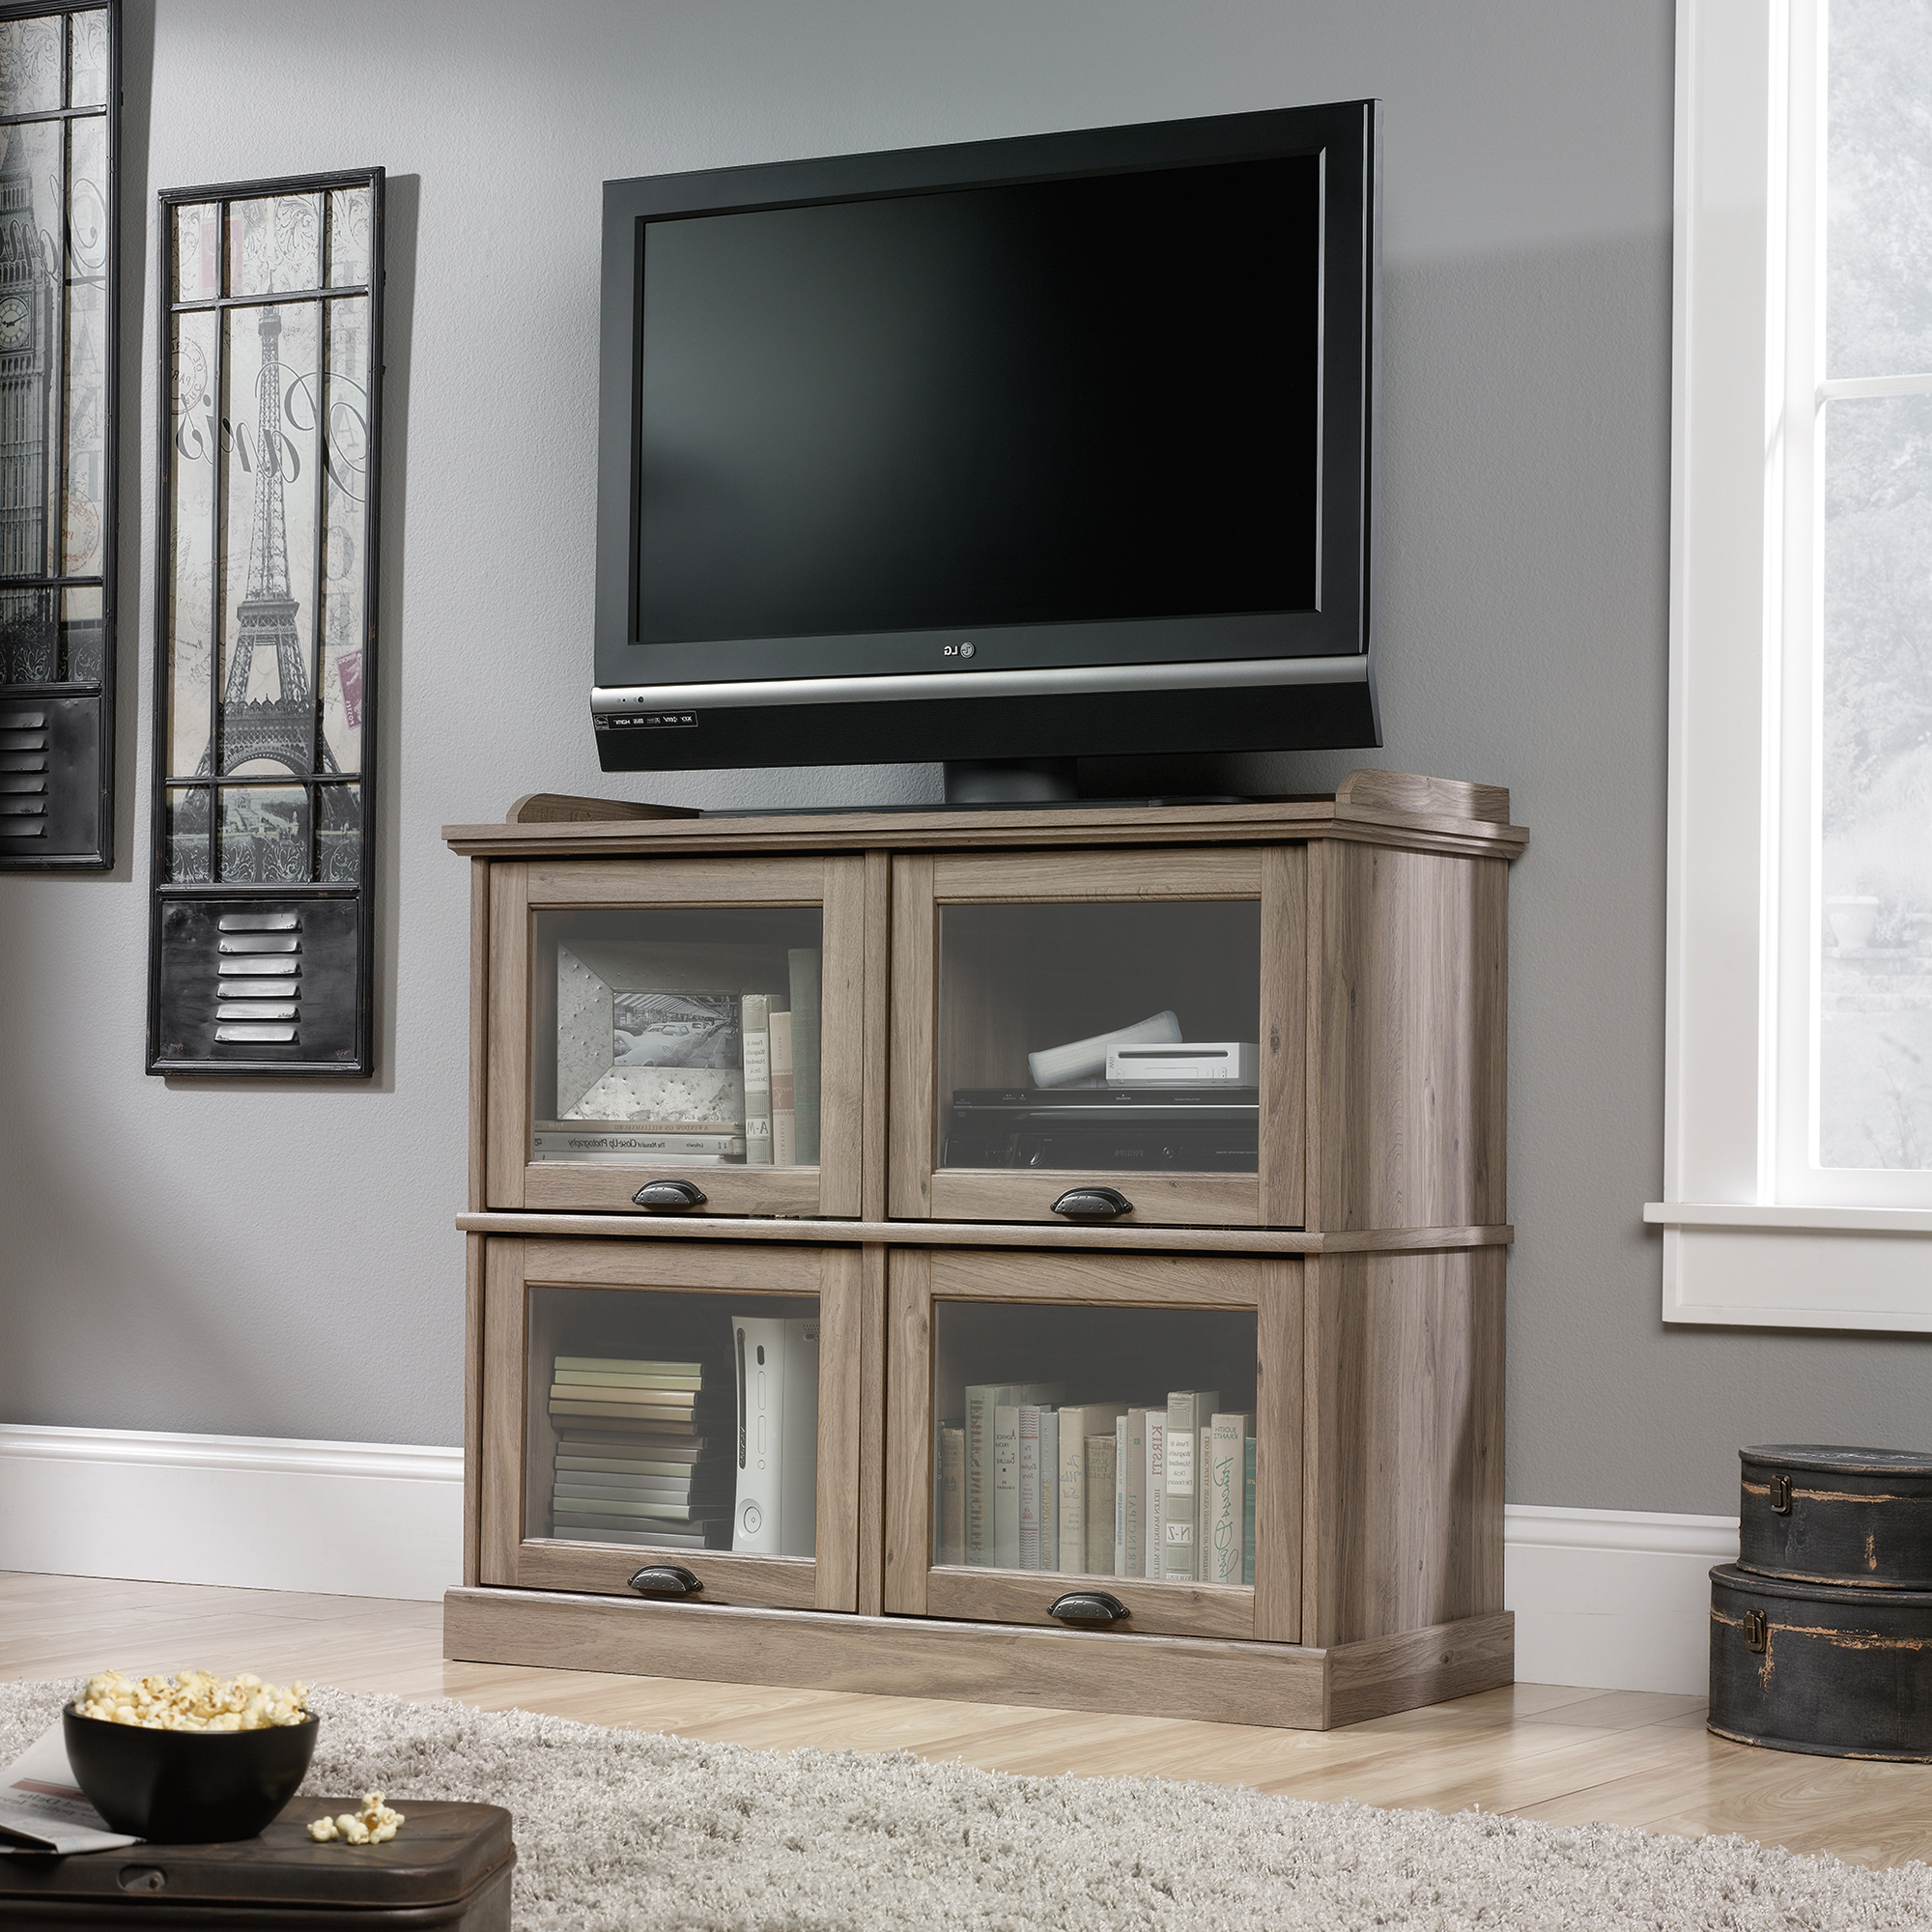 Widely Used Highboy Tv Stands In Sauder Highboy Tv Stand (414720) – Sauder – The Furniture Co (View 20 of 20)